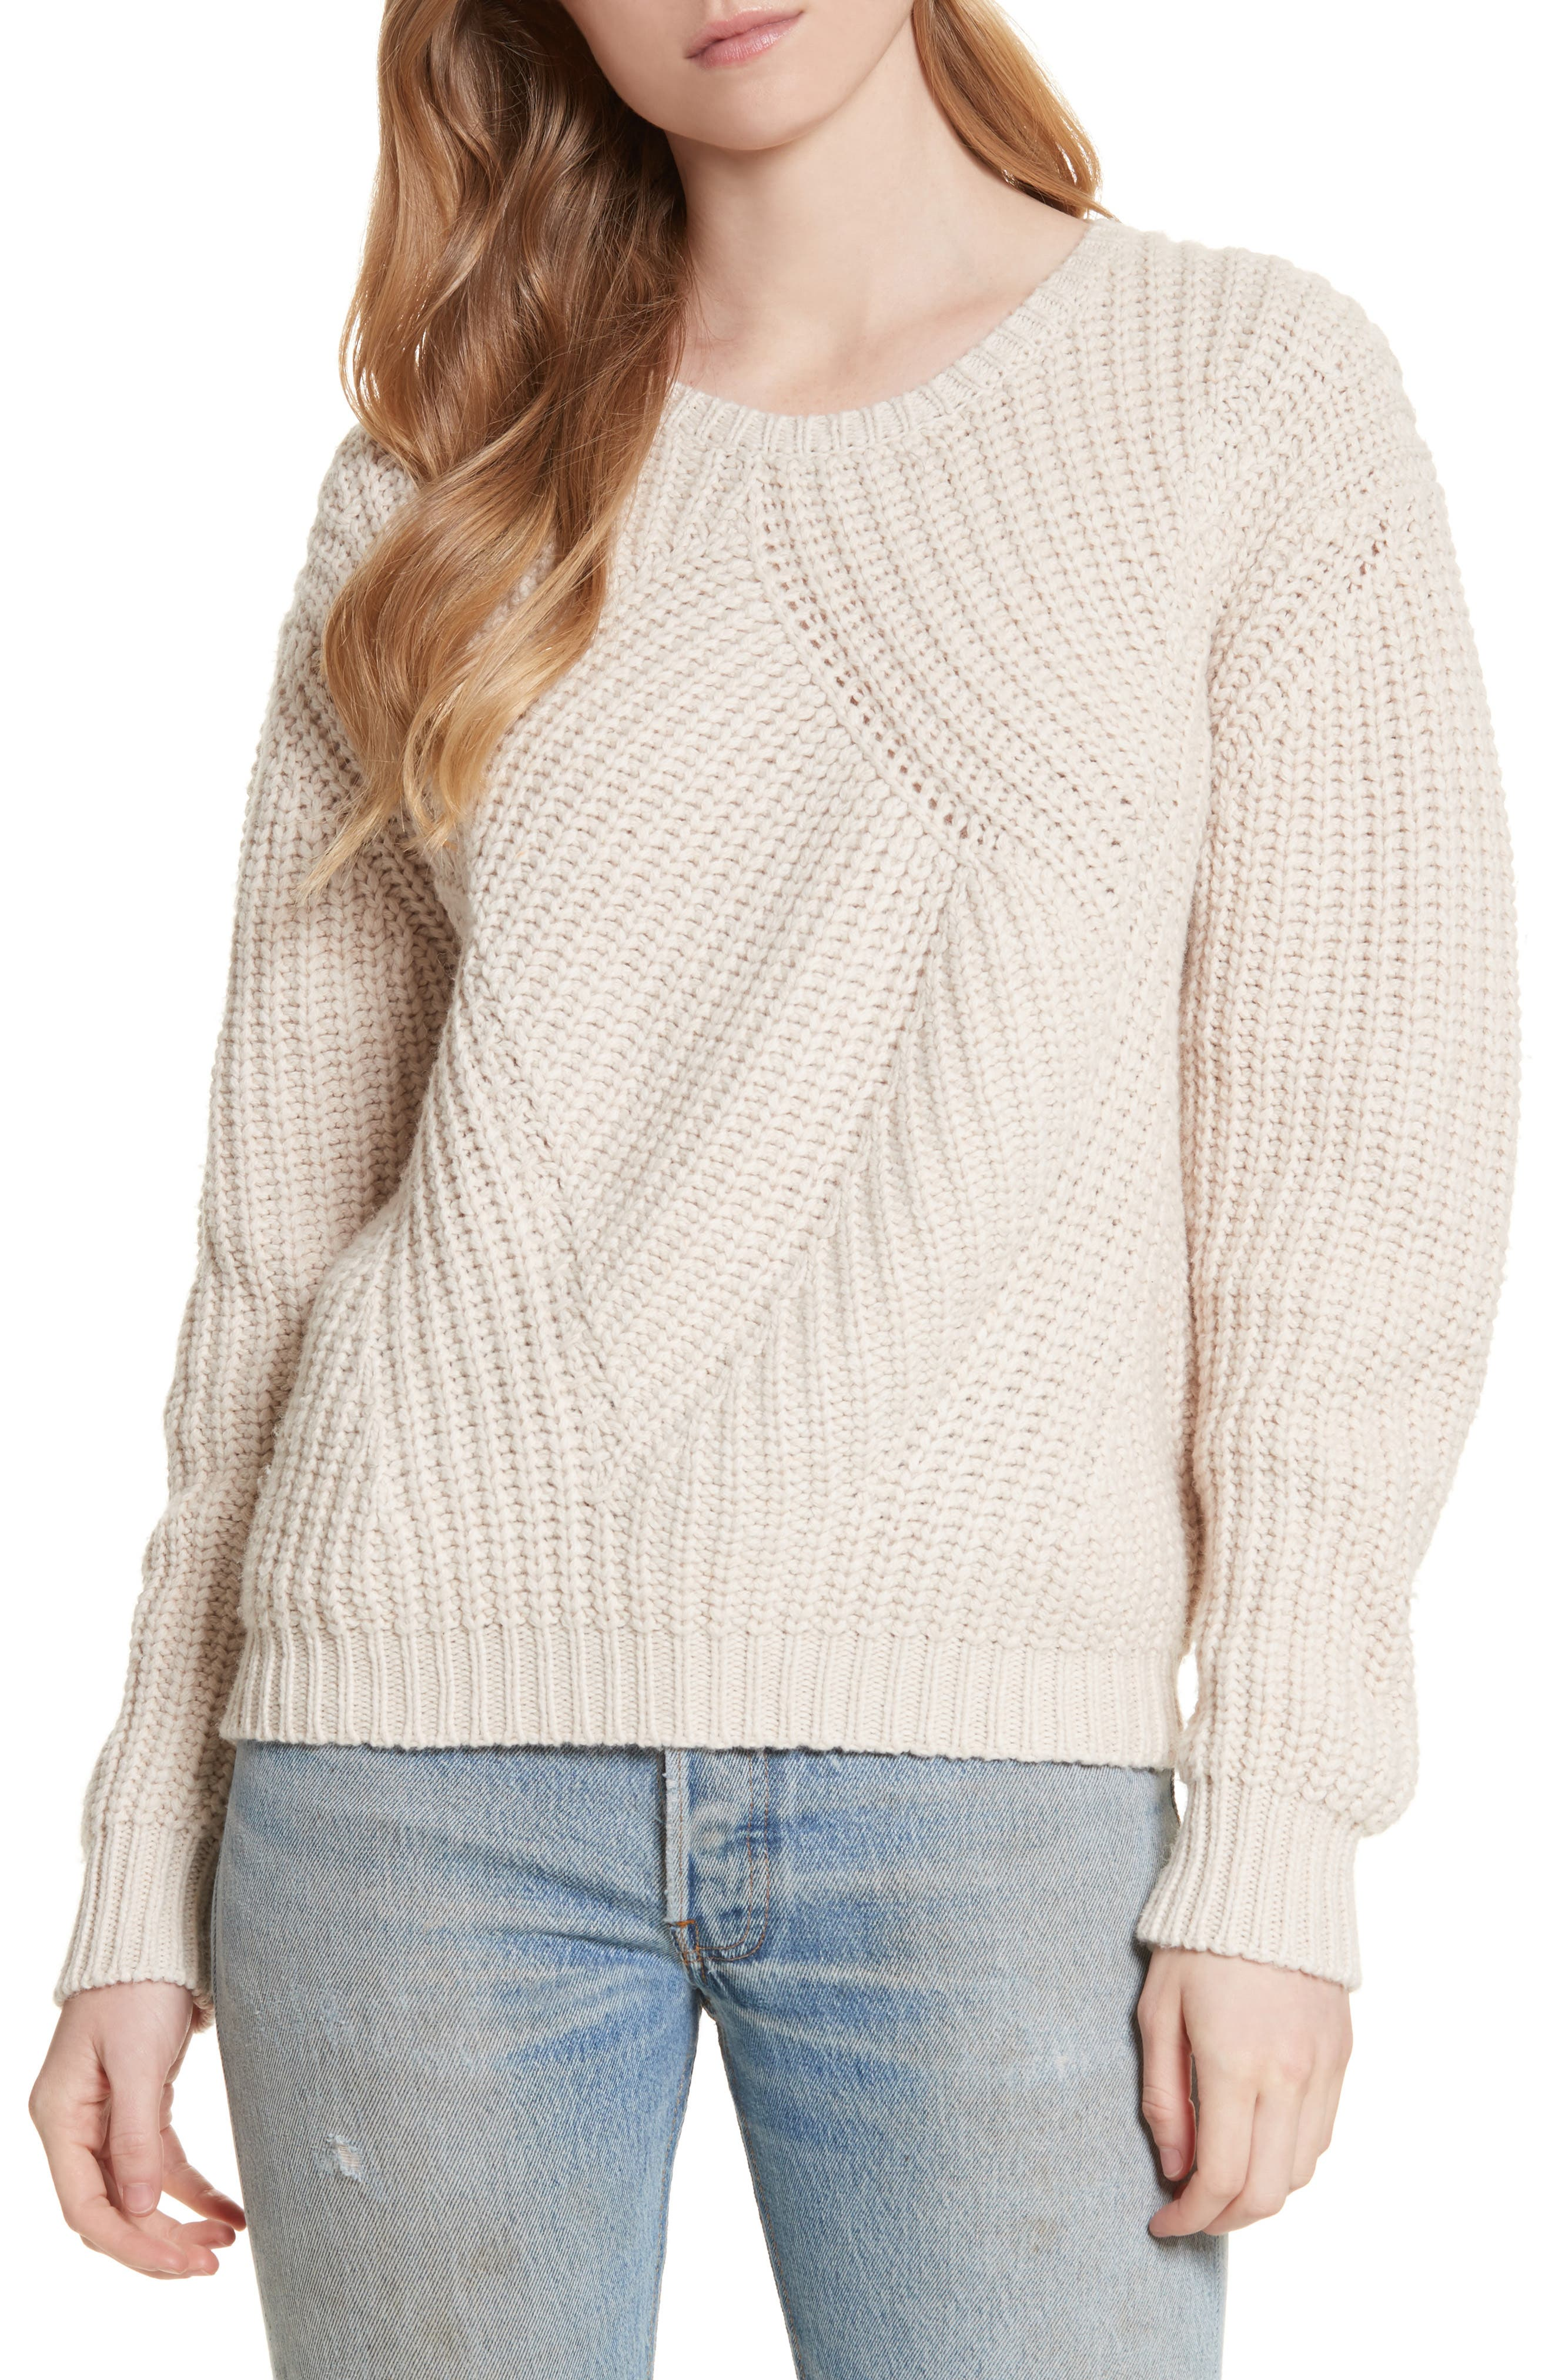 Soft Joie Balenne Sweater